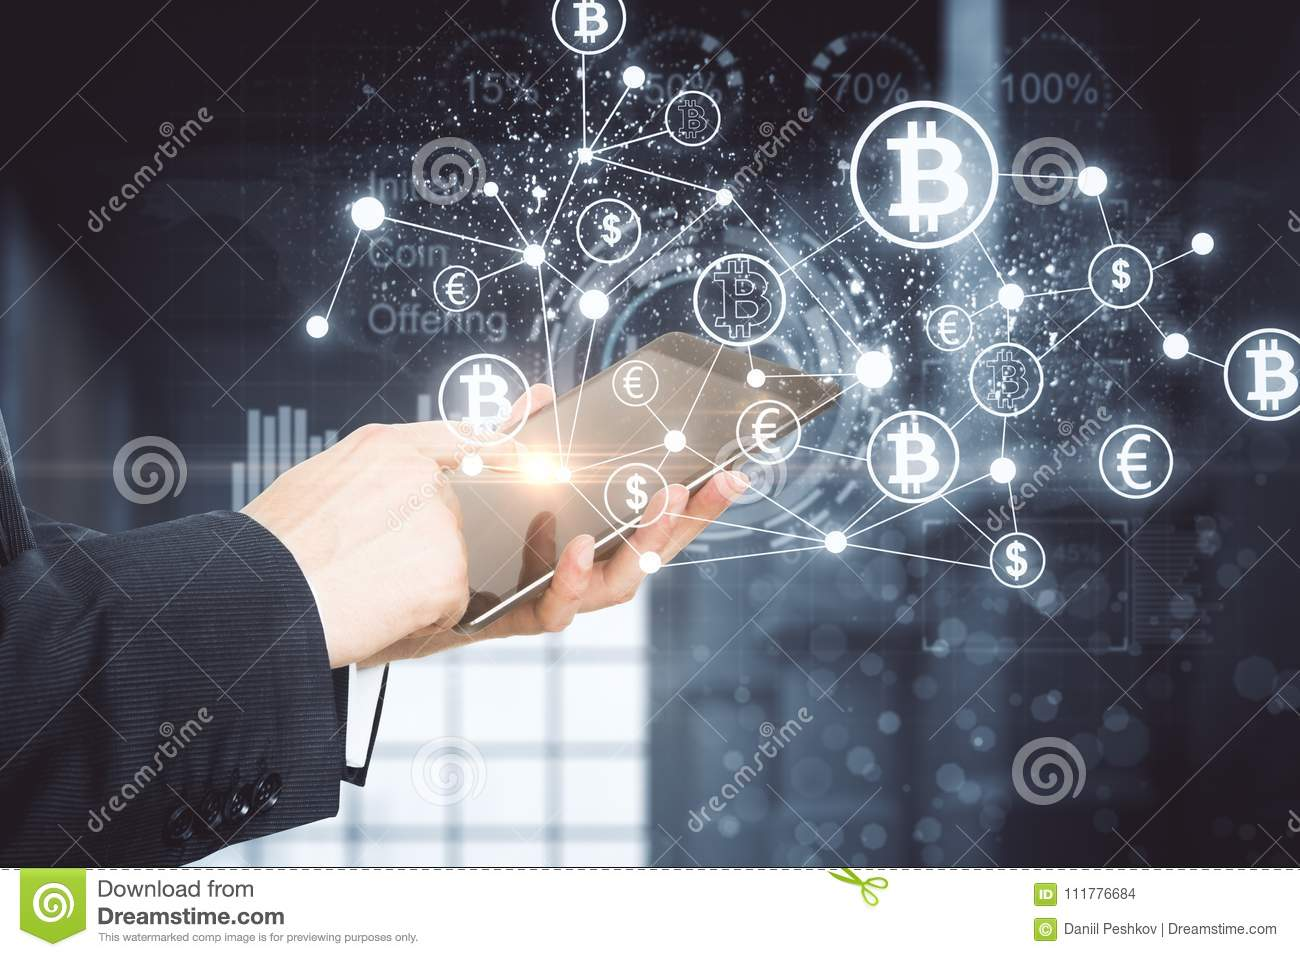 Cryptography and technology concept